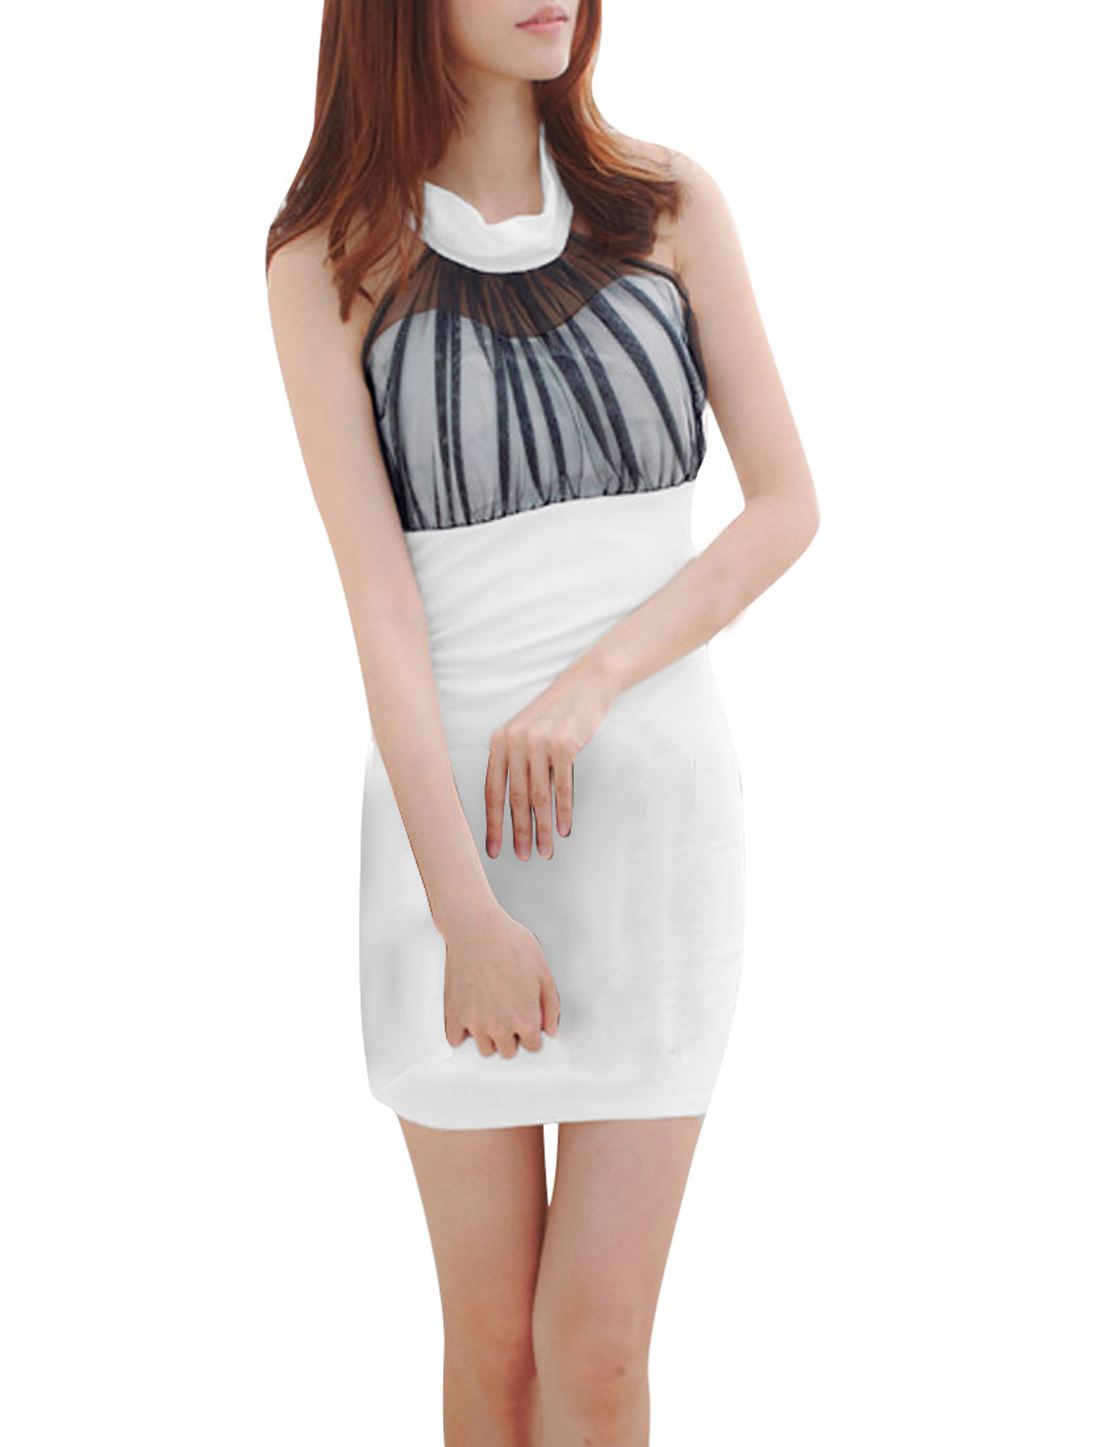 Lady Pullover Fashion Halter Neck Design White Fitted Dress XS